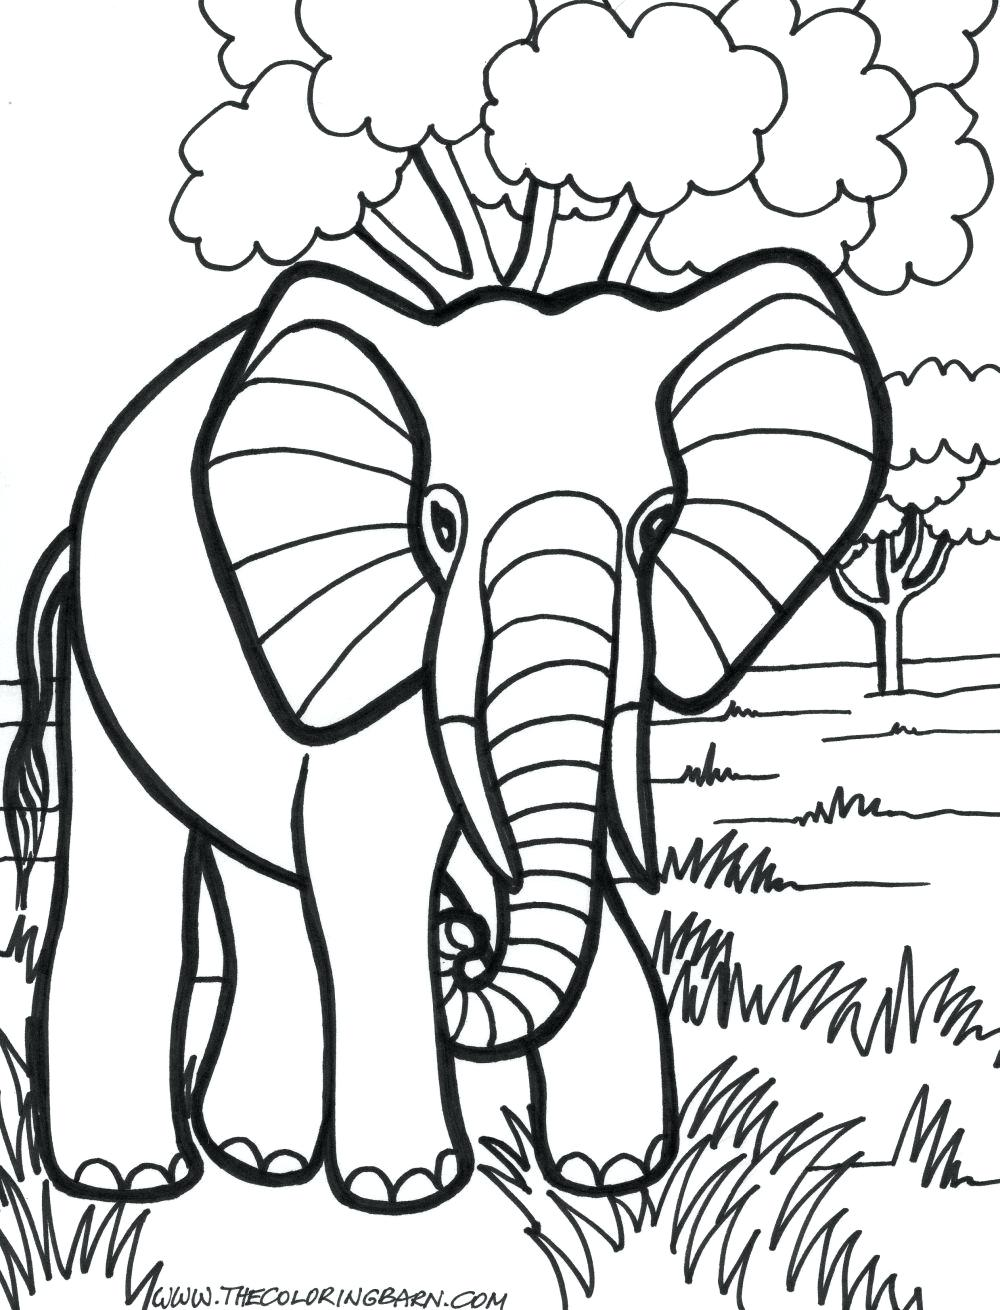 1000x1310 Enormous Elephant Color Sheet Coloring Pages Senhos Para Cute